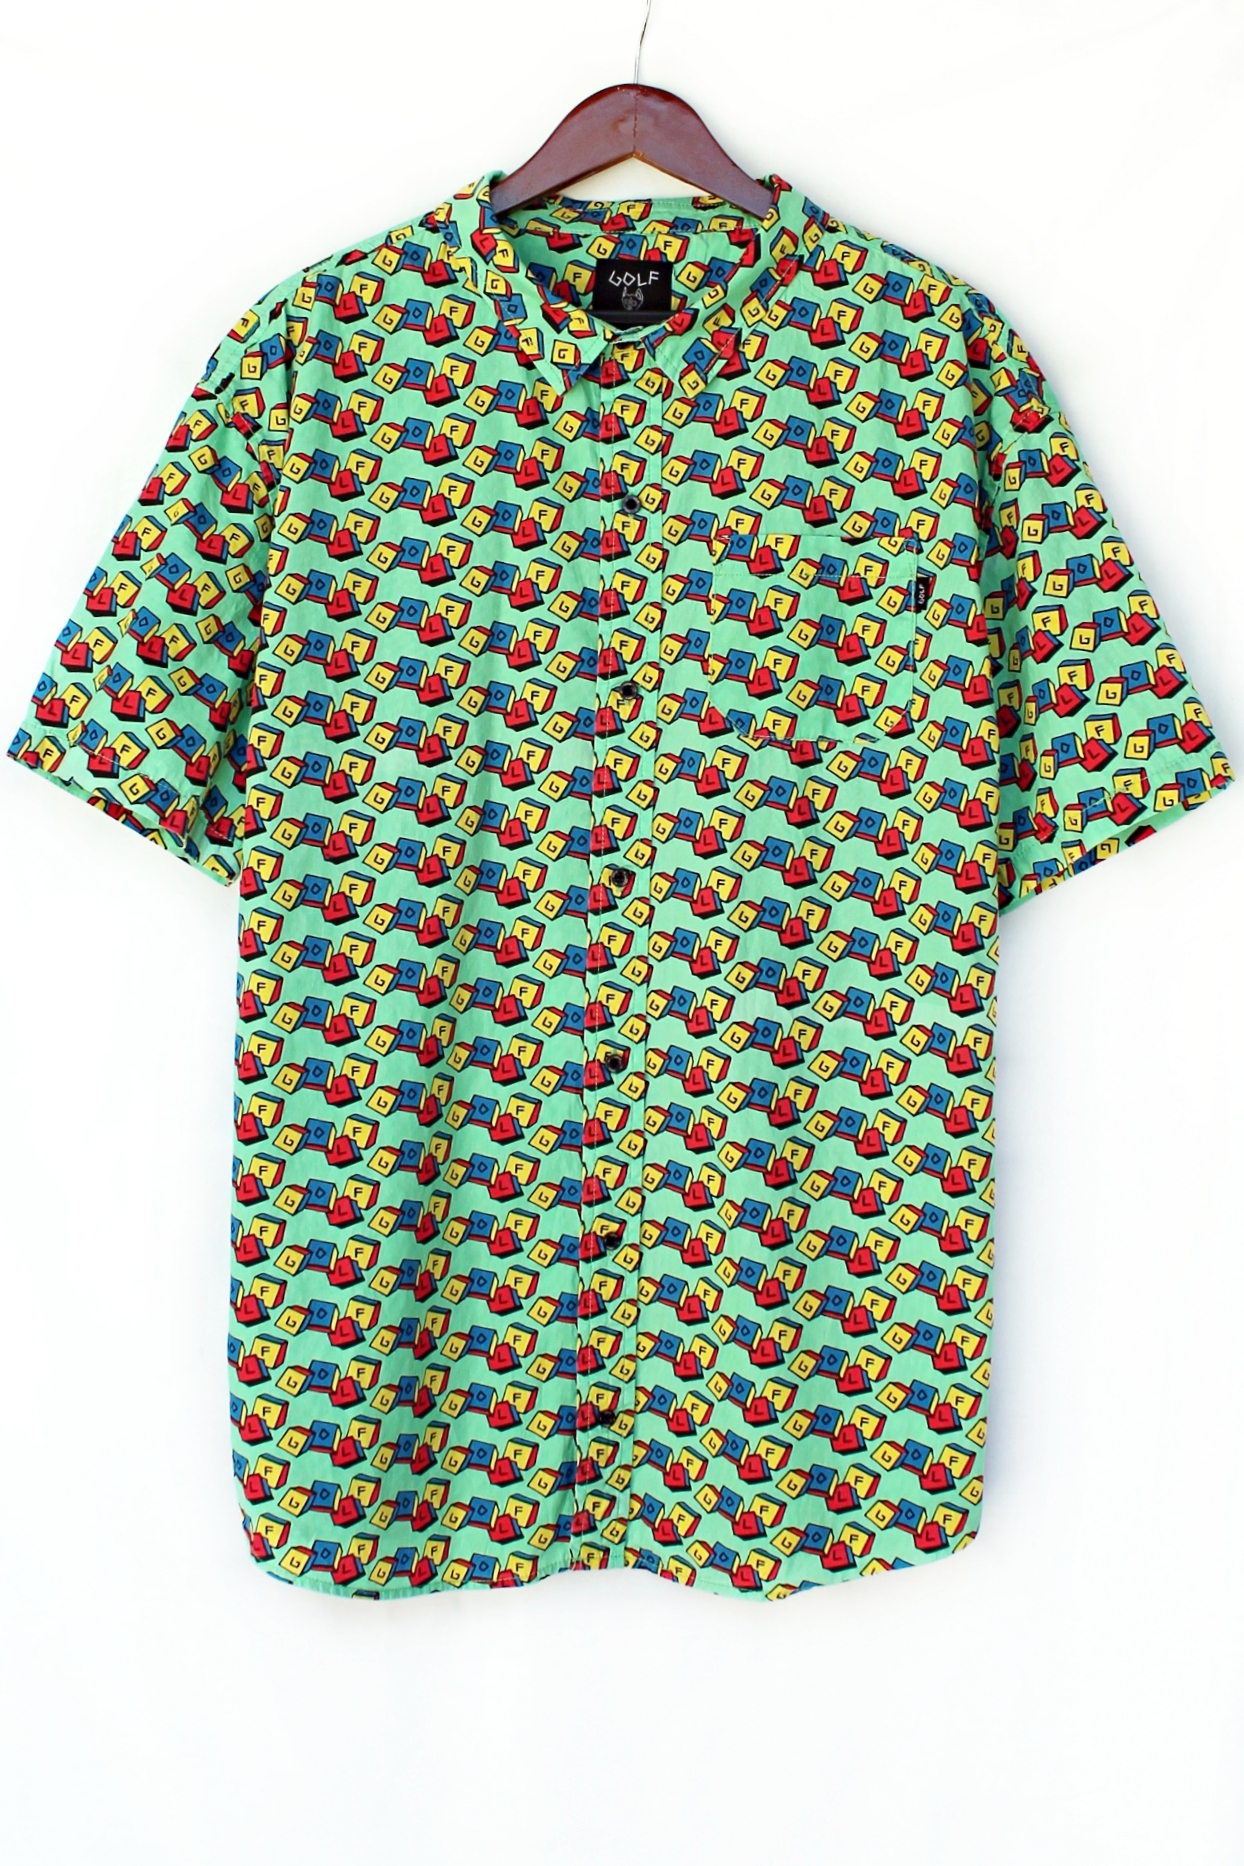 Golf Blox Woven Button-Down Shirt | Just Vu